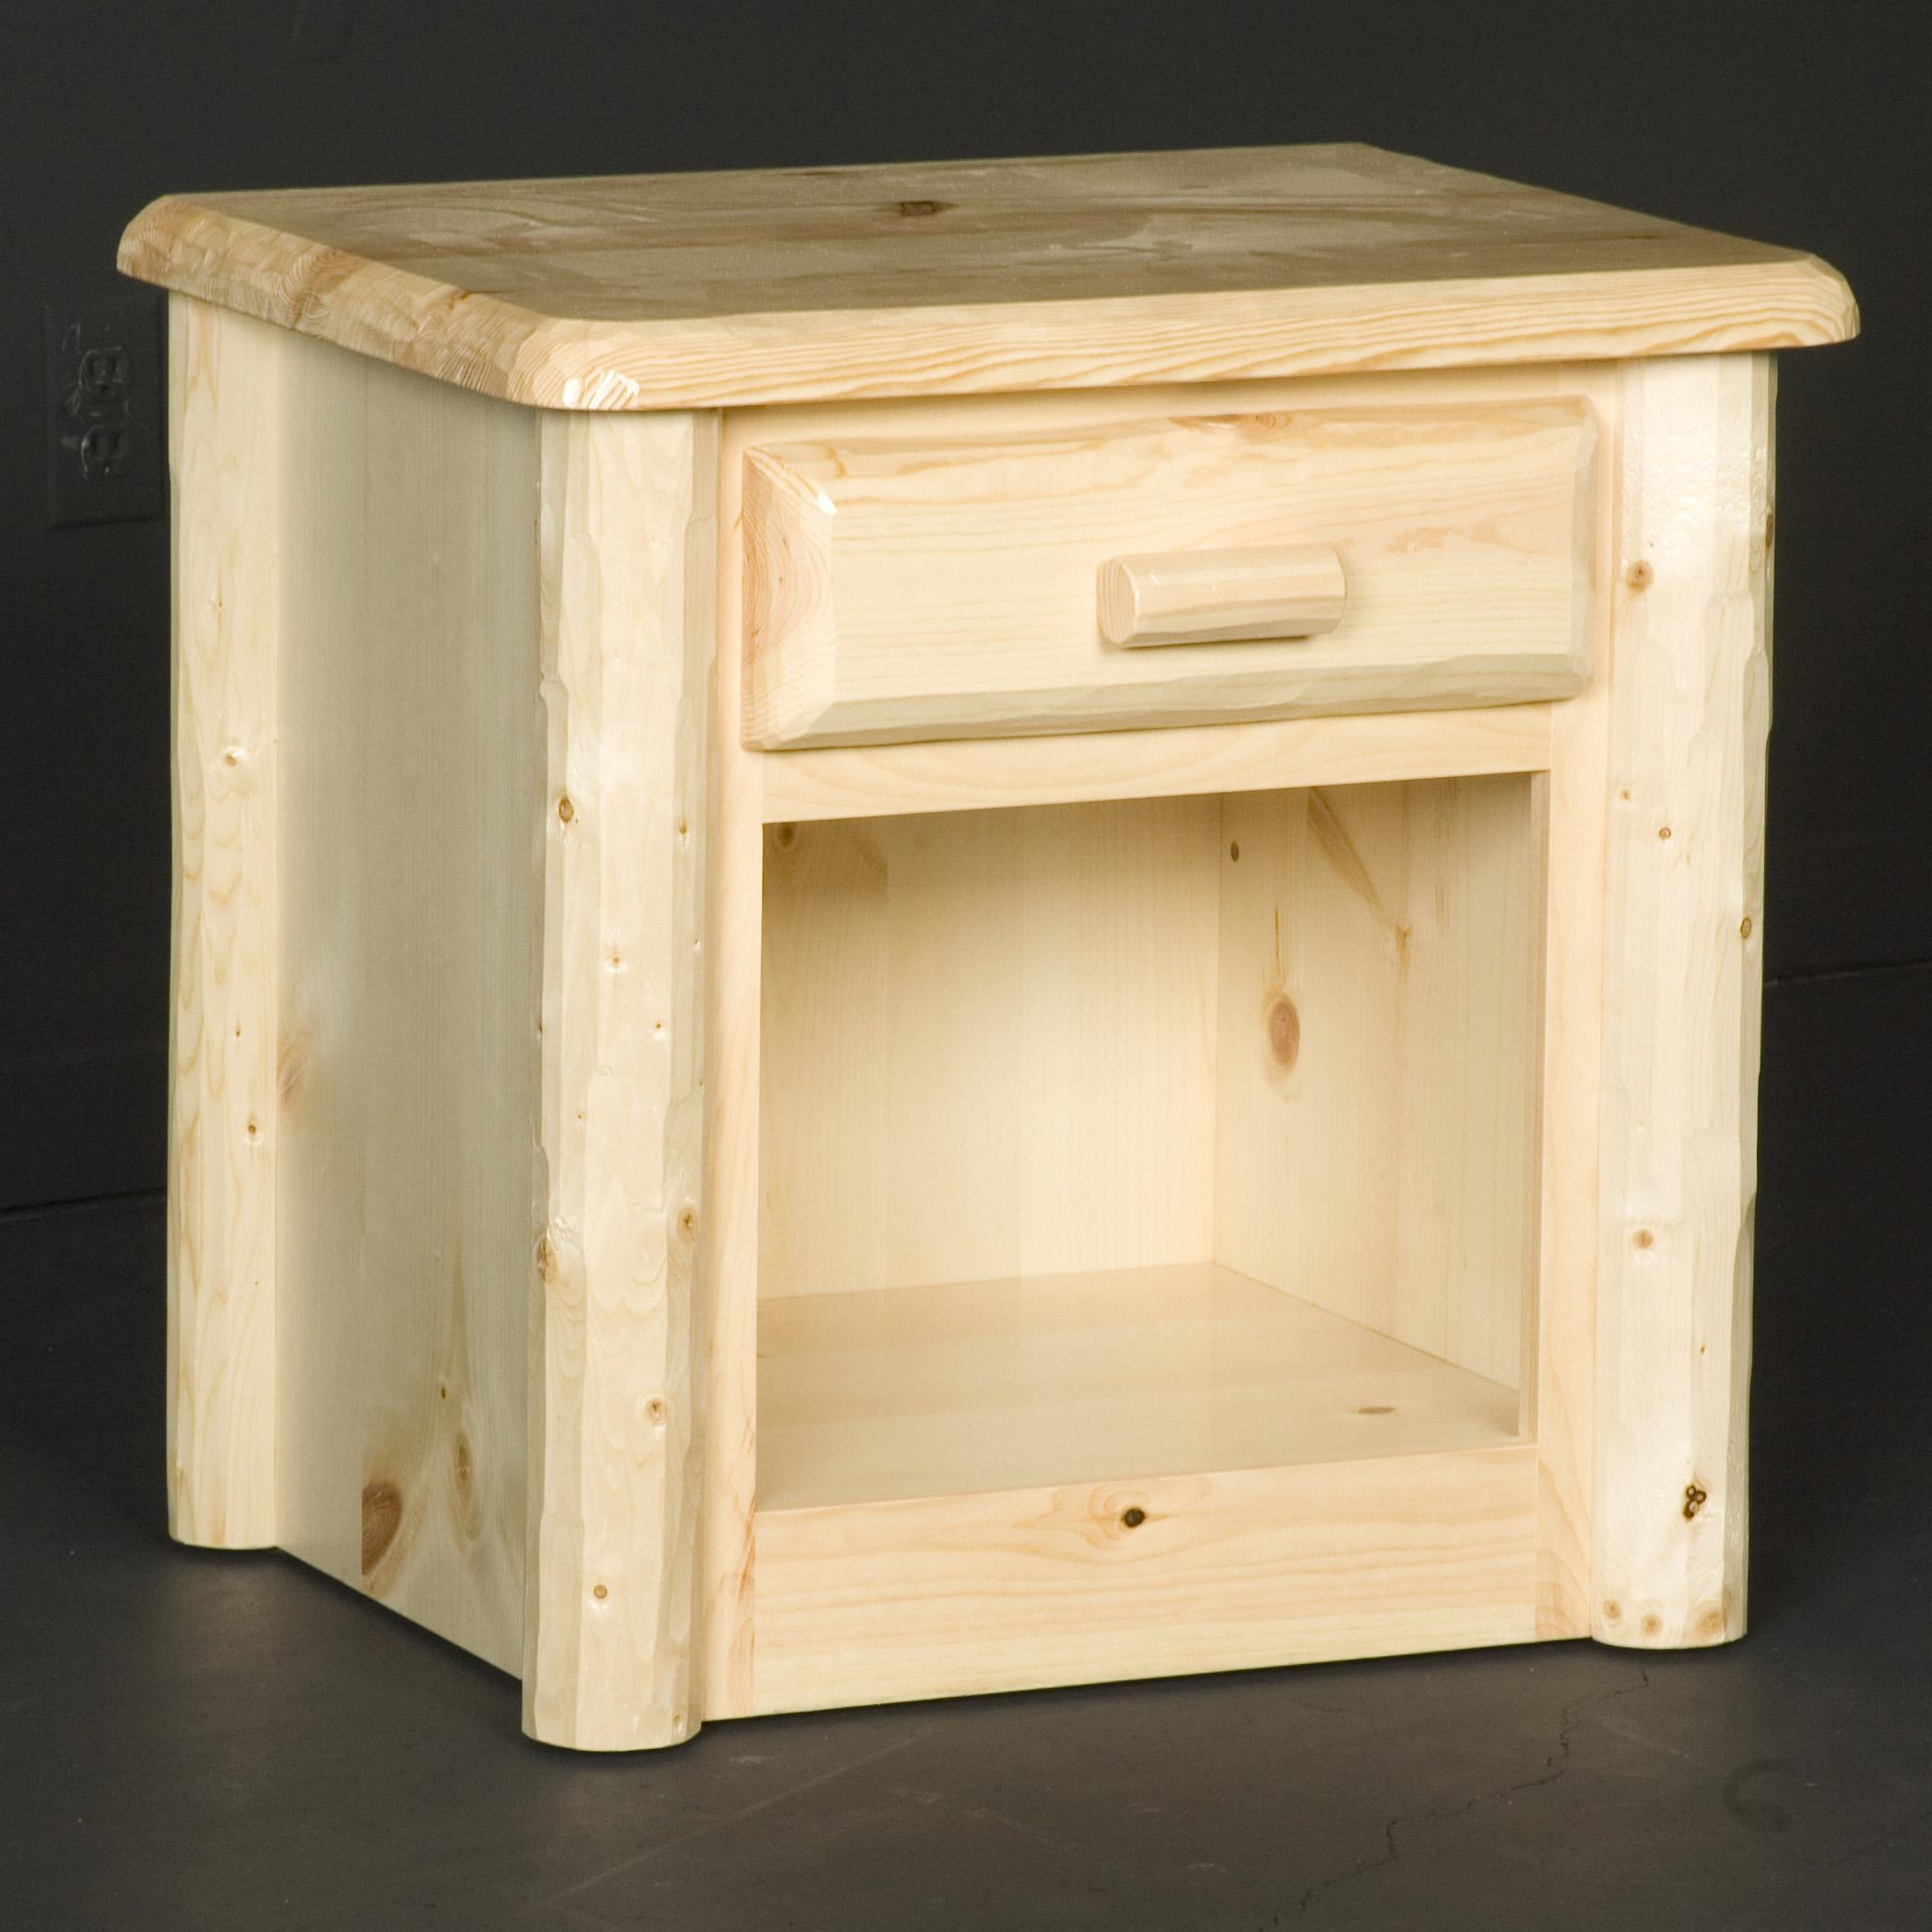 NorthShore by Becker Log Furniture 1 Drawer Nightstand - Item Number: NW1NS1D